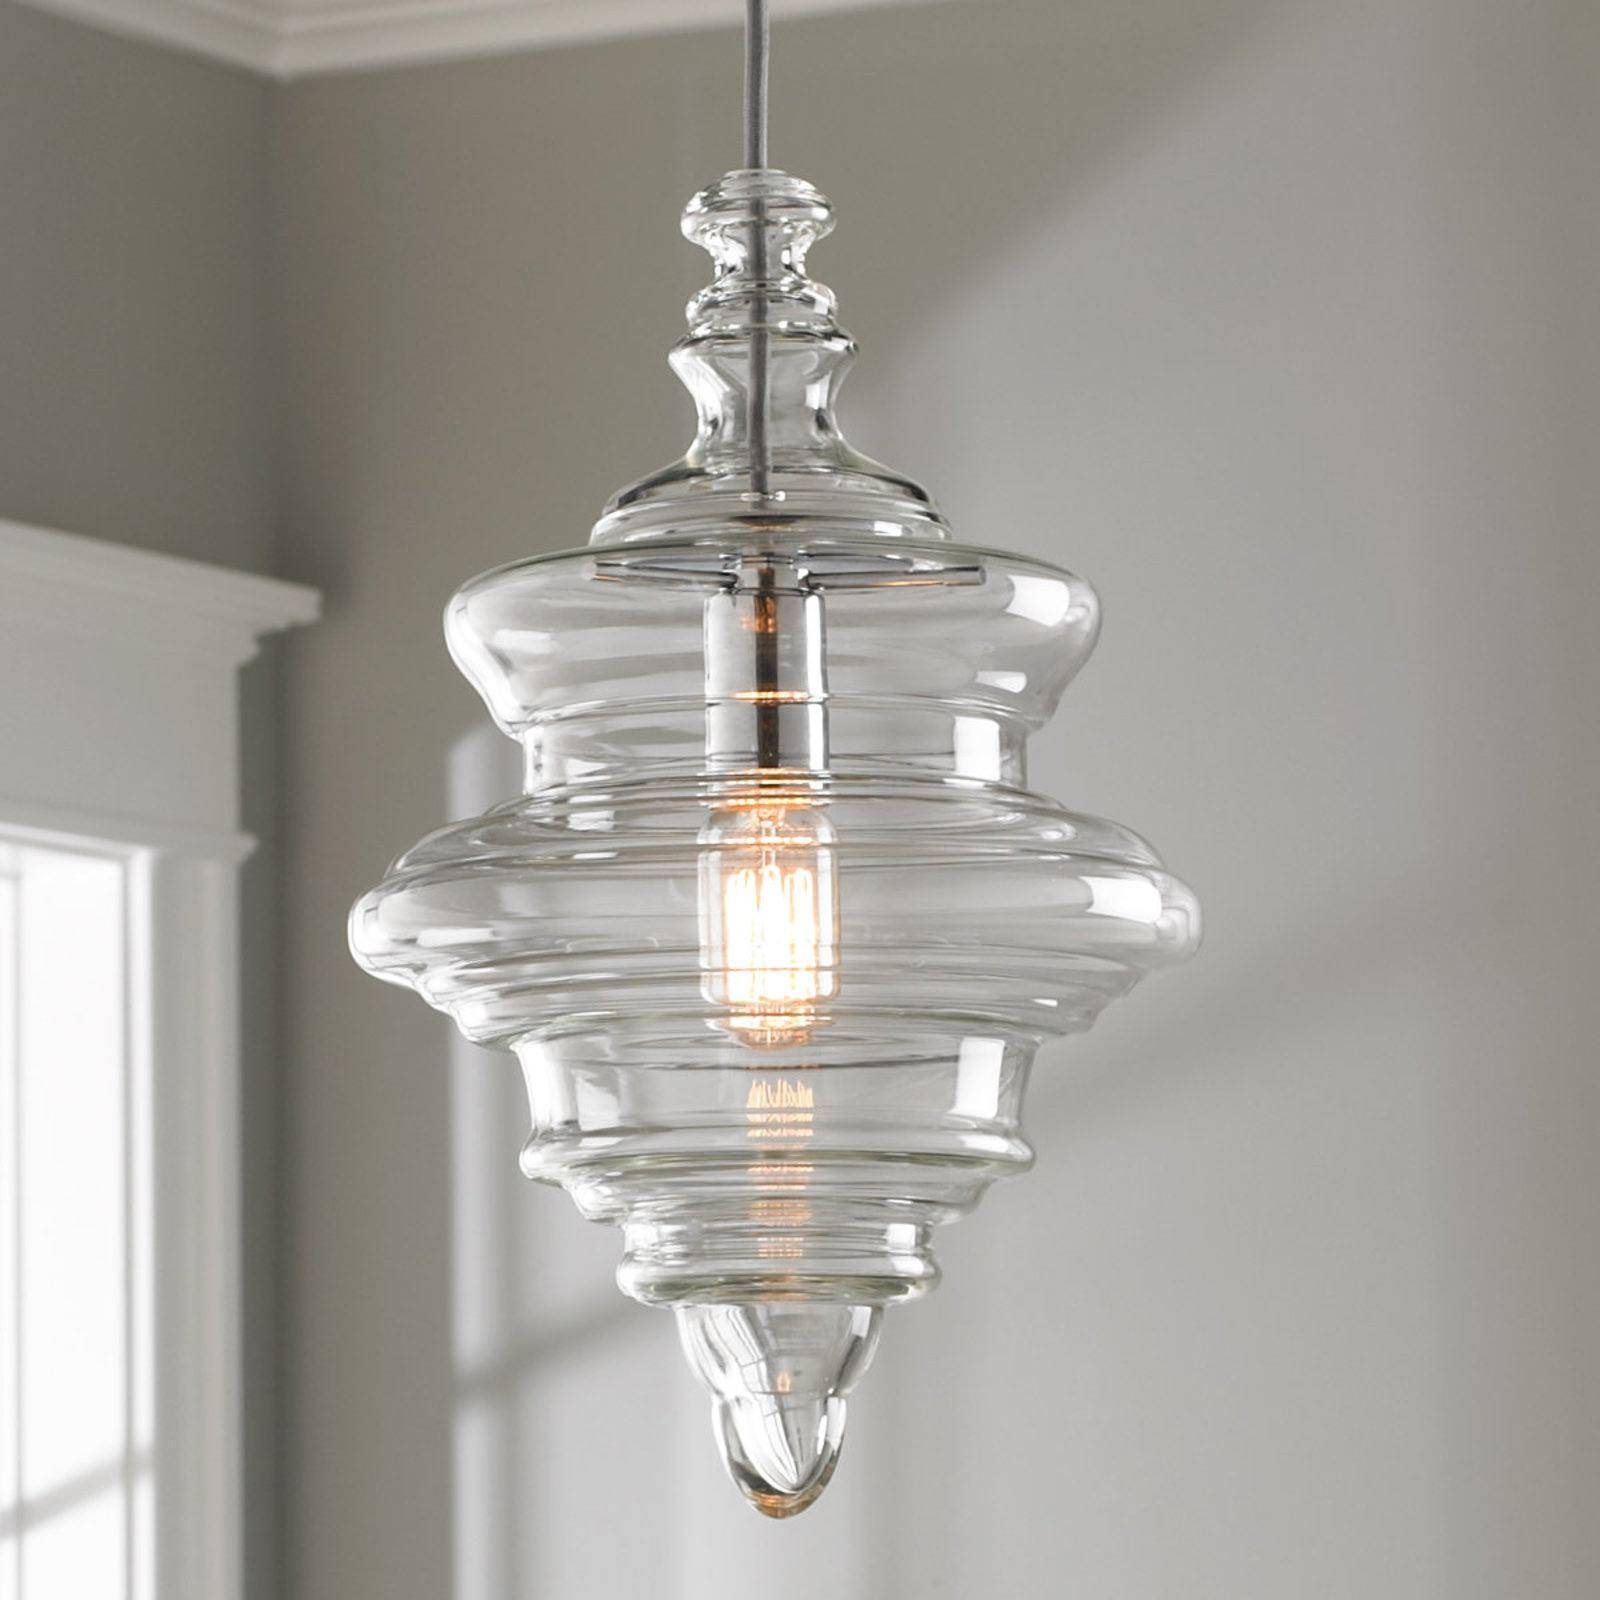 Sea Glass Pendant Lights As Well Of Paxton Hand Blown Light In The for Sea Glass Pendant Lights (Image 13 of 15)